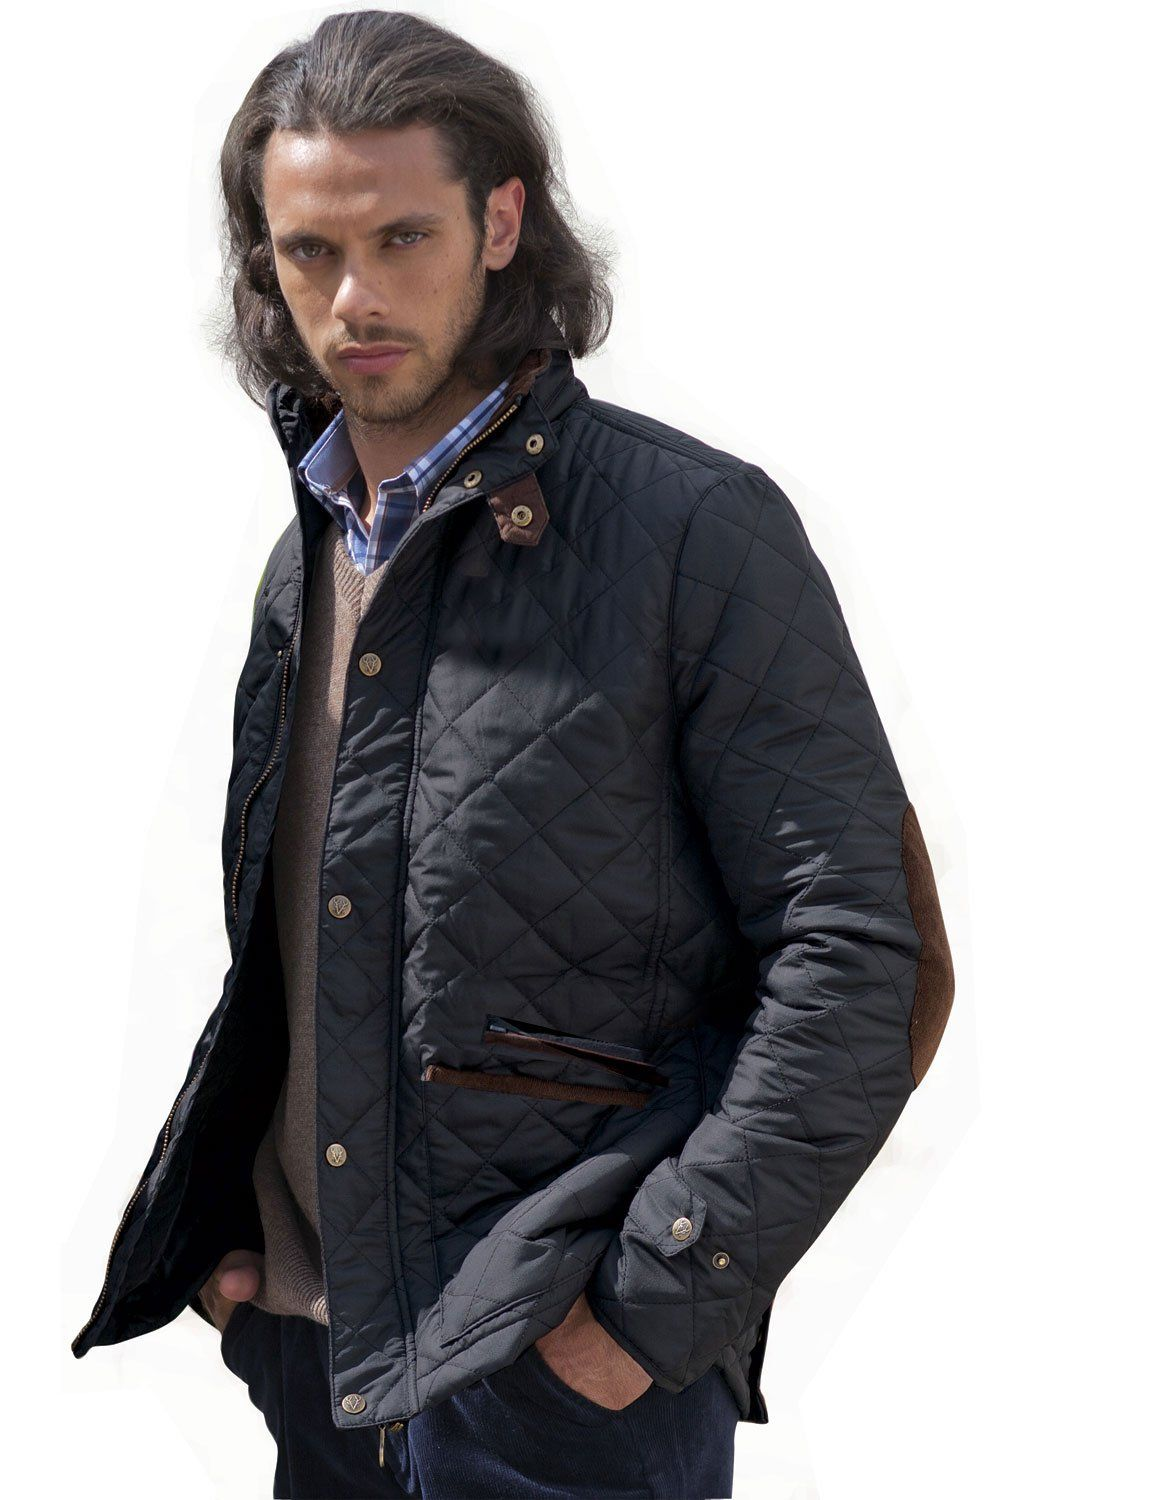 Vedoneire Mens Navy Quilted Jacket 3039 Padded Quilt Coat Vest Blue Navy Indigo At Amazon Men S Clothing Store Down Coats Jackets Women Clothes Quilted Coat [ 1500 x 1150 Pixel ]